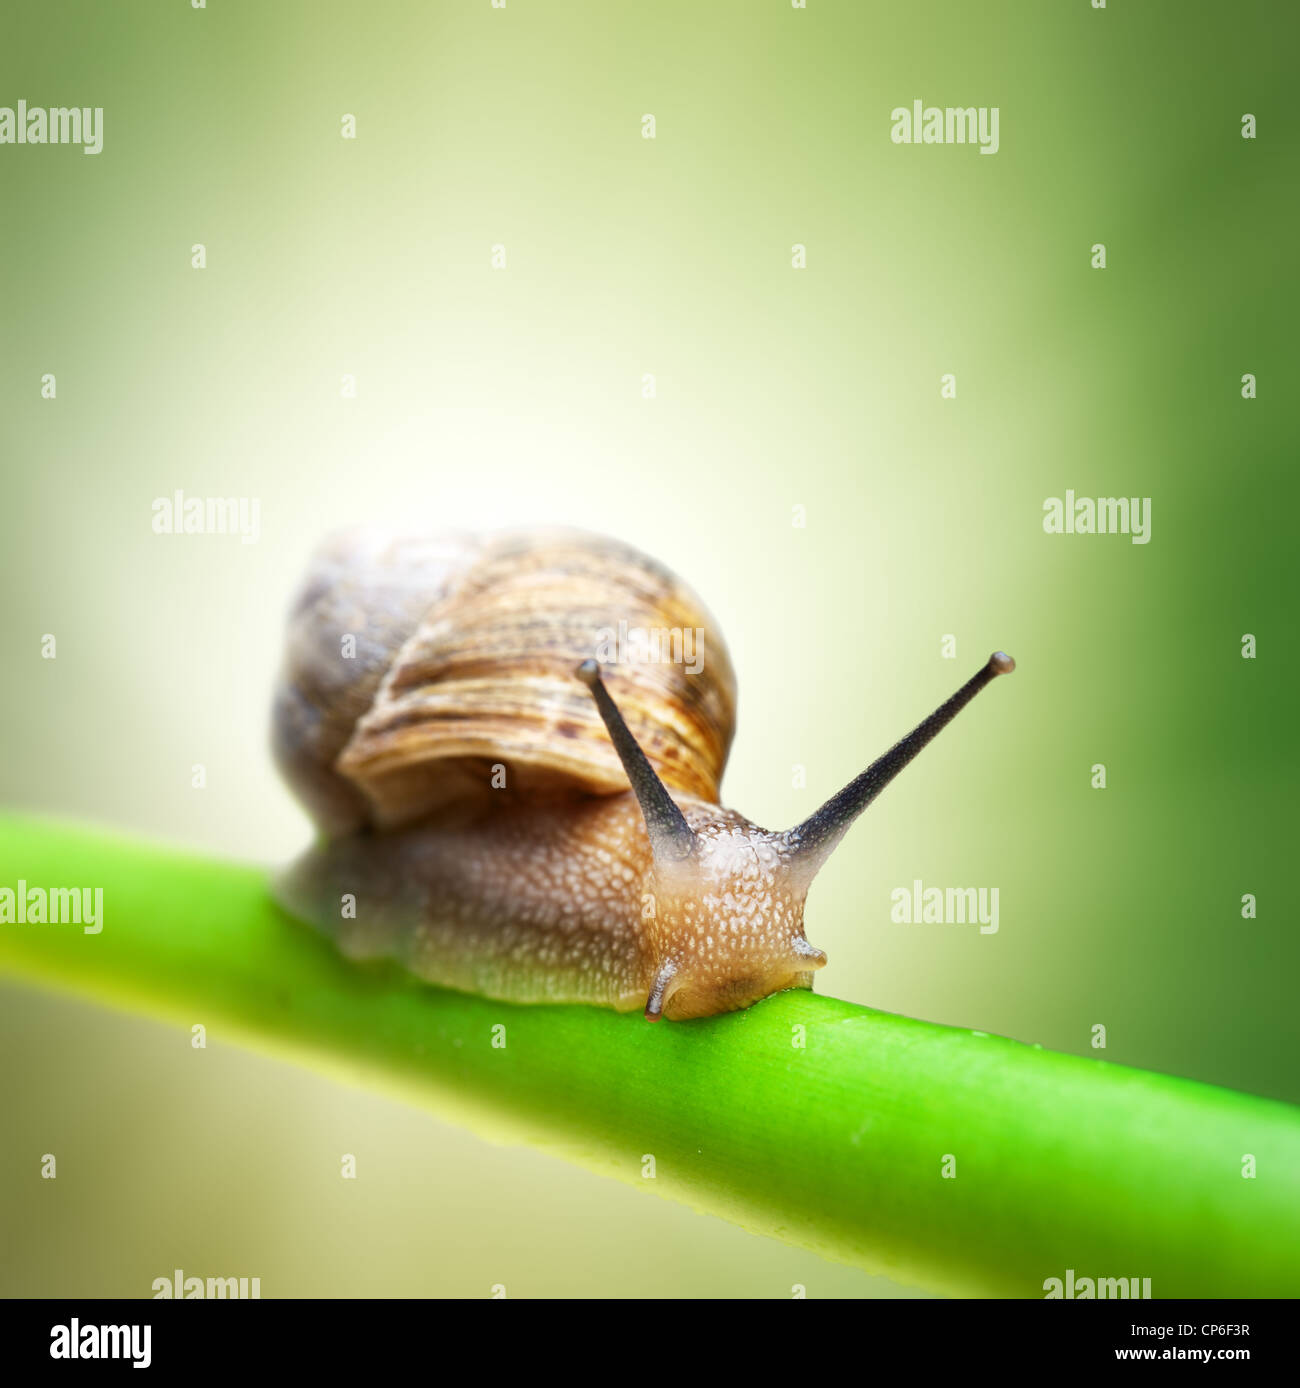 Escargot rampant sur tige verte Photo Stock